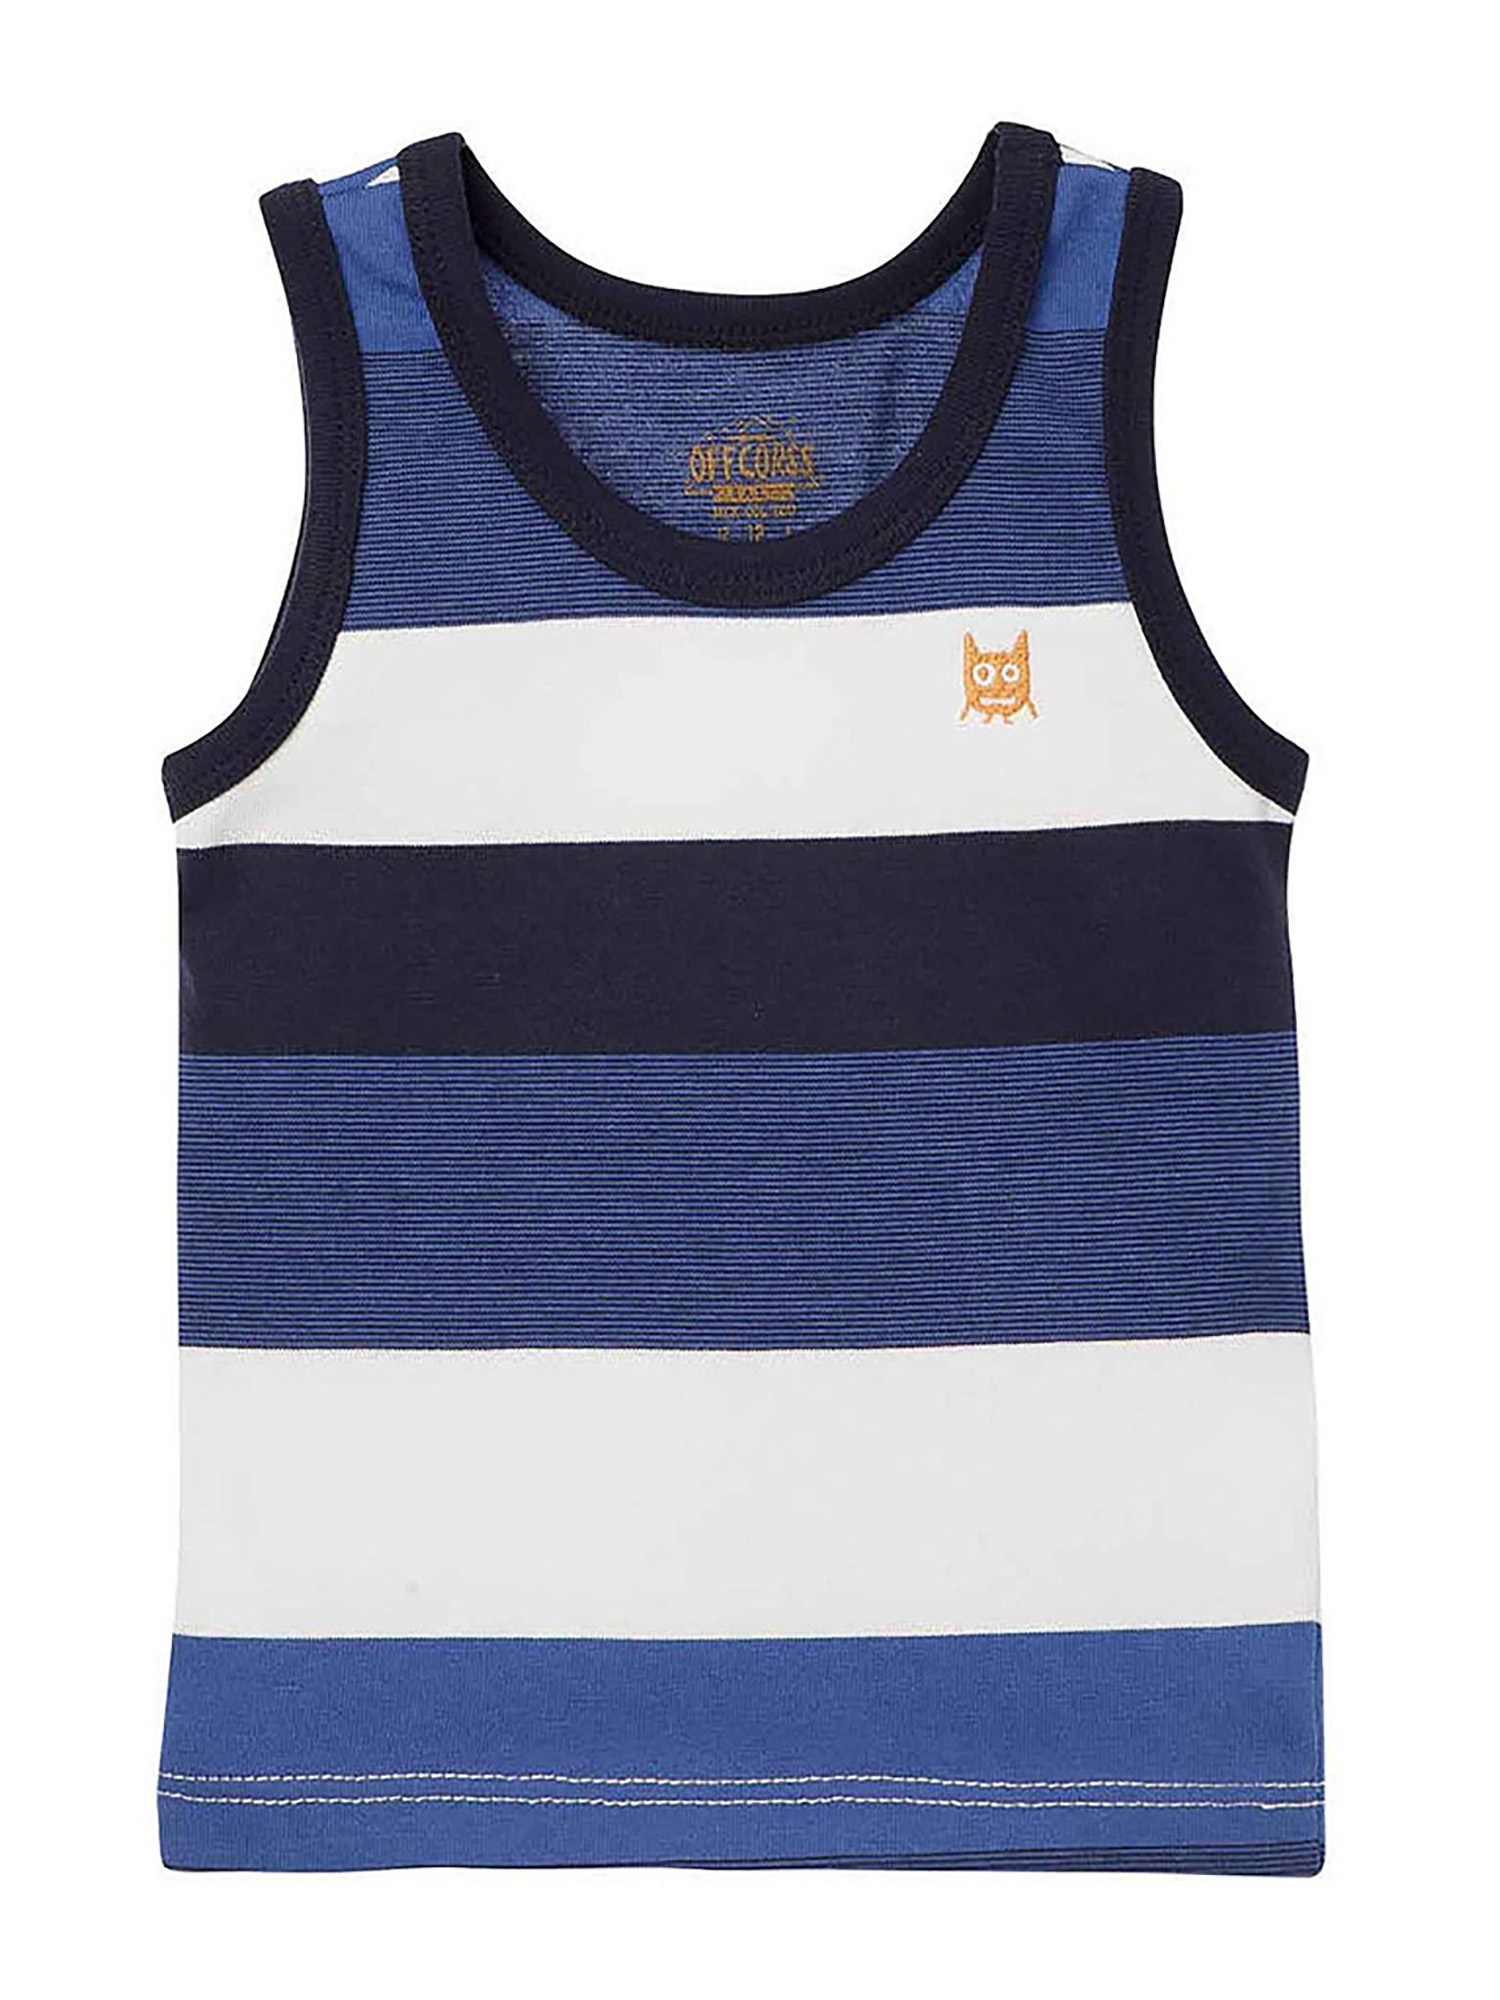 OFFCORSS Toddler Boy Colored Tank Tops Camisillas Boys Camisetas De Niños